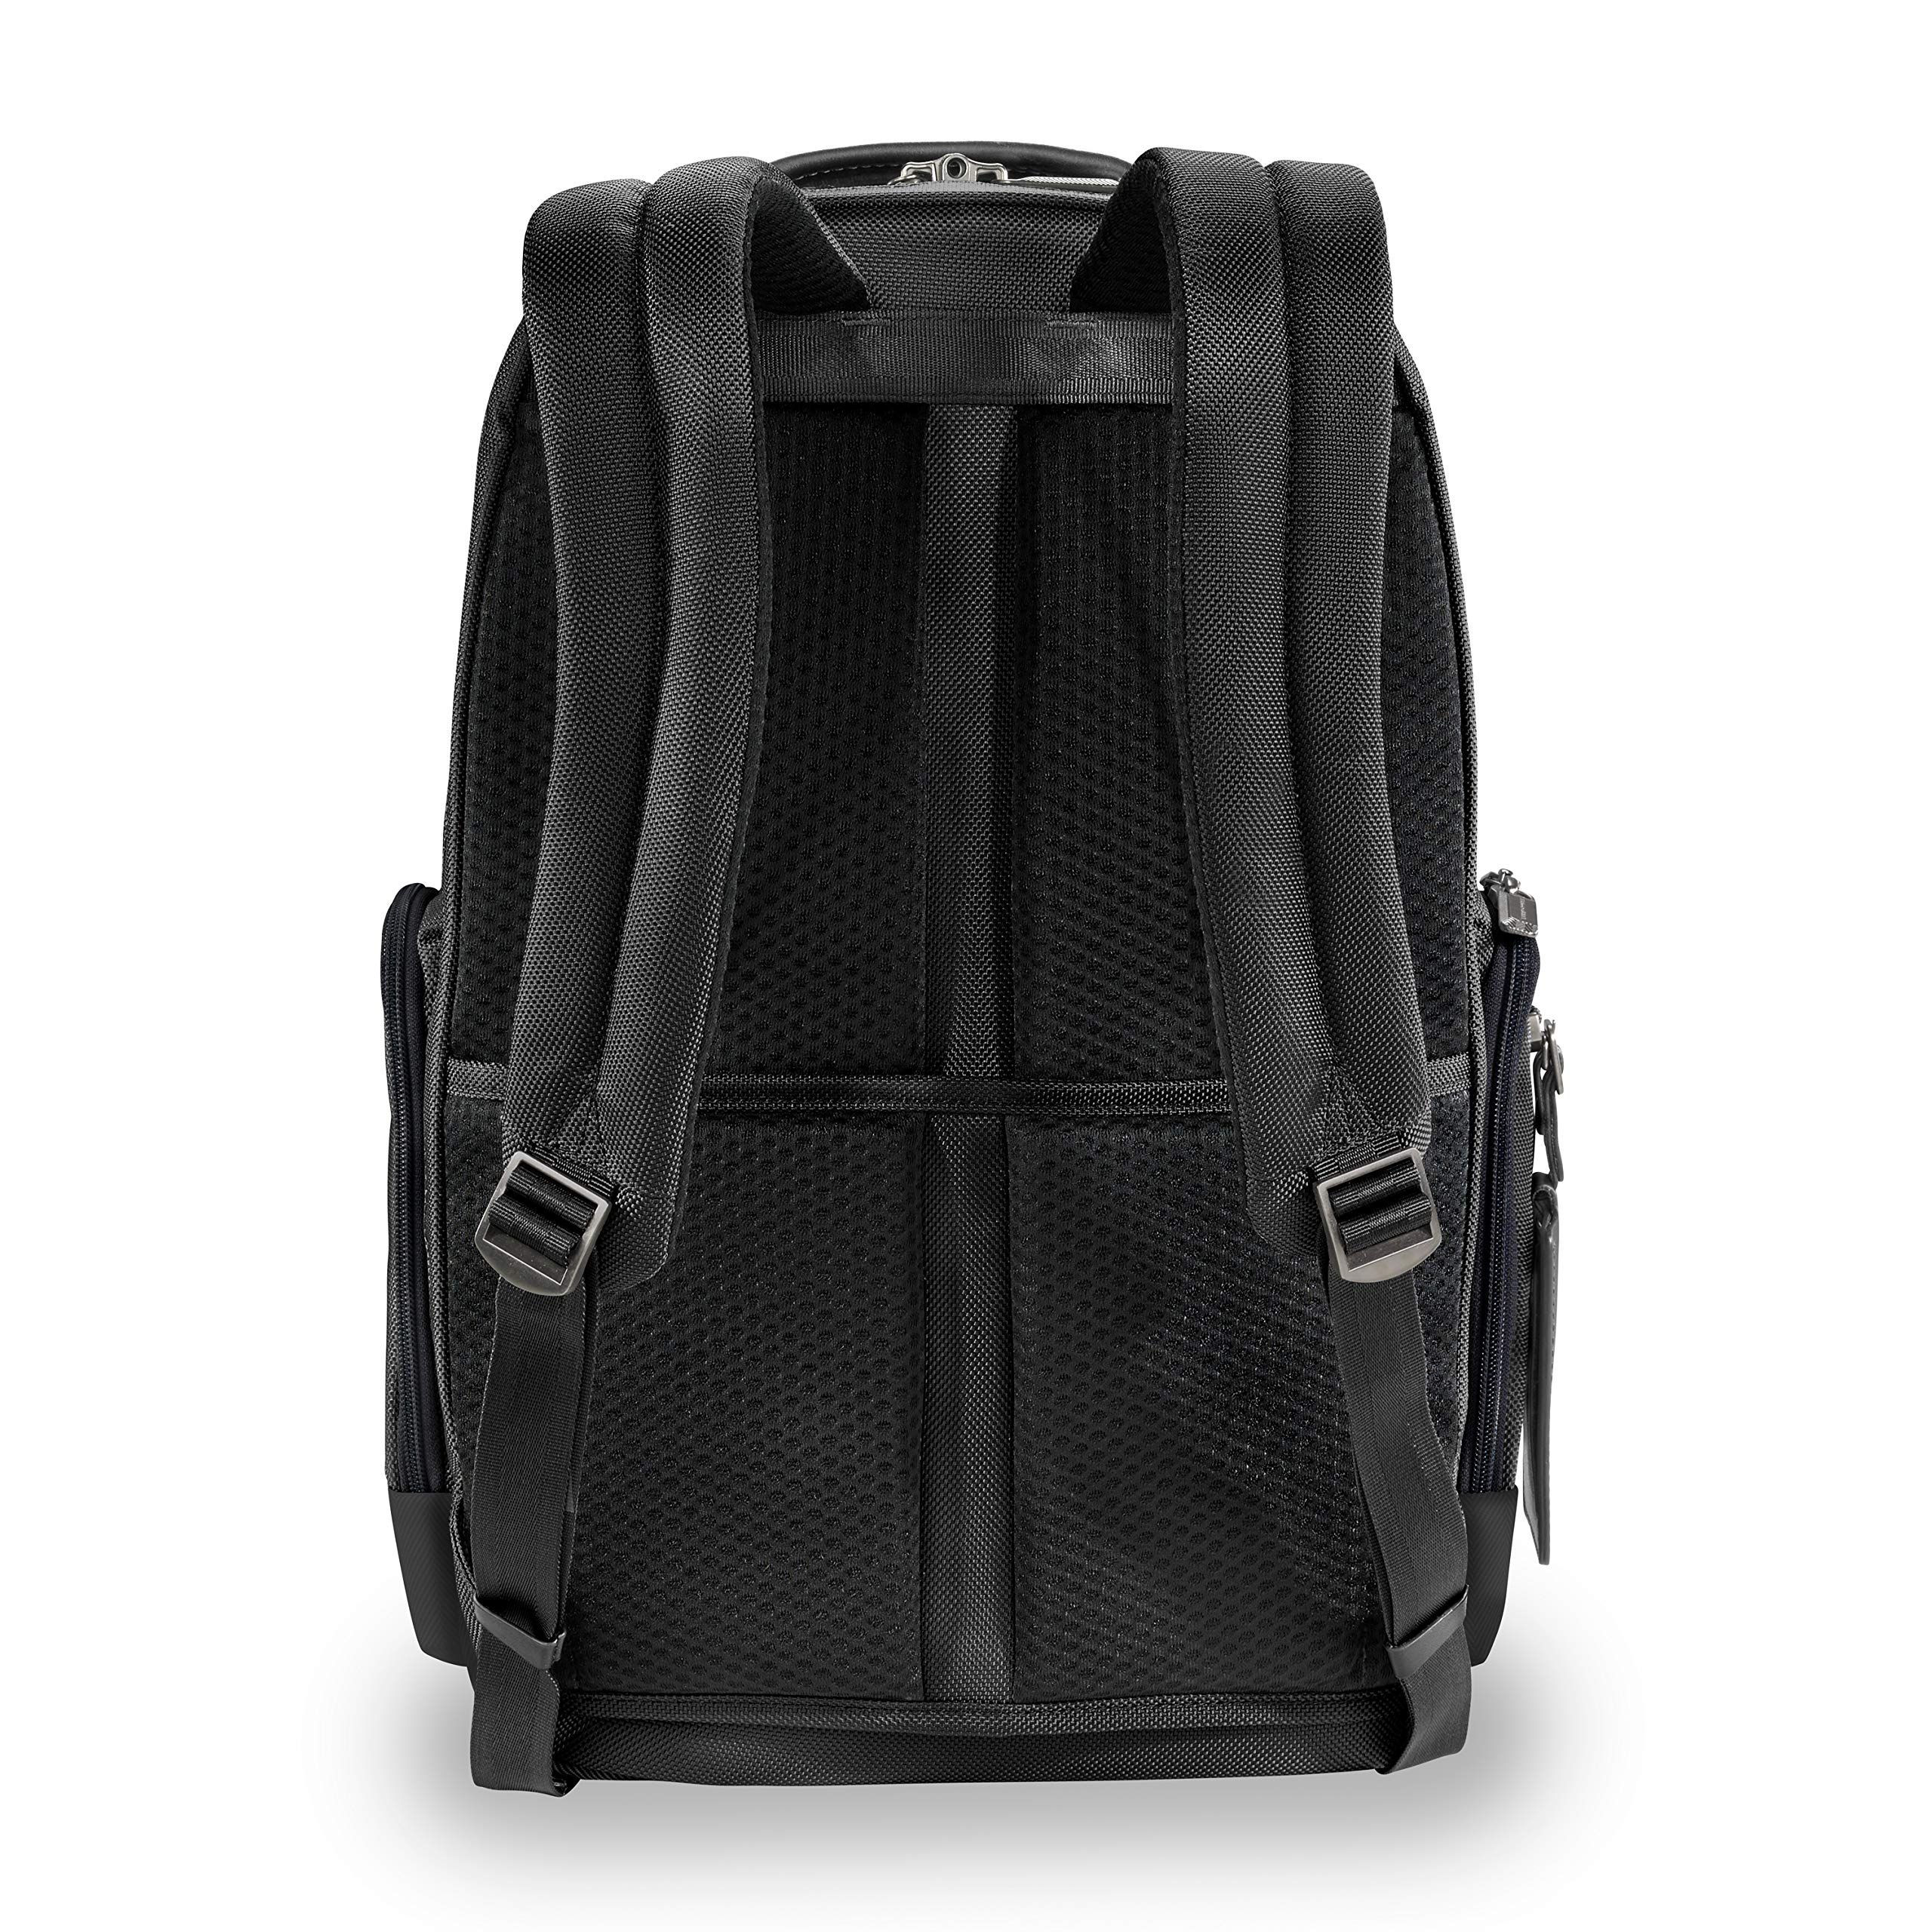 Briggs & Riley @work Medium Cargo Backpack, Black by Briggs & Riley (Image #10)